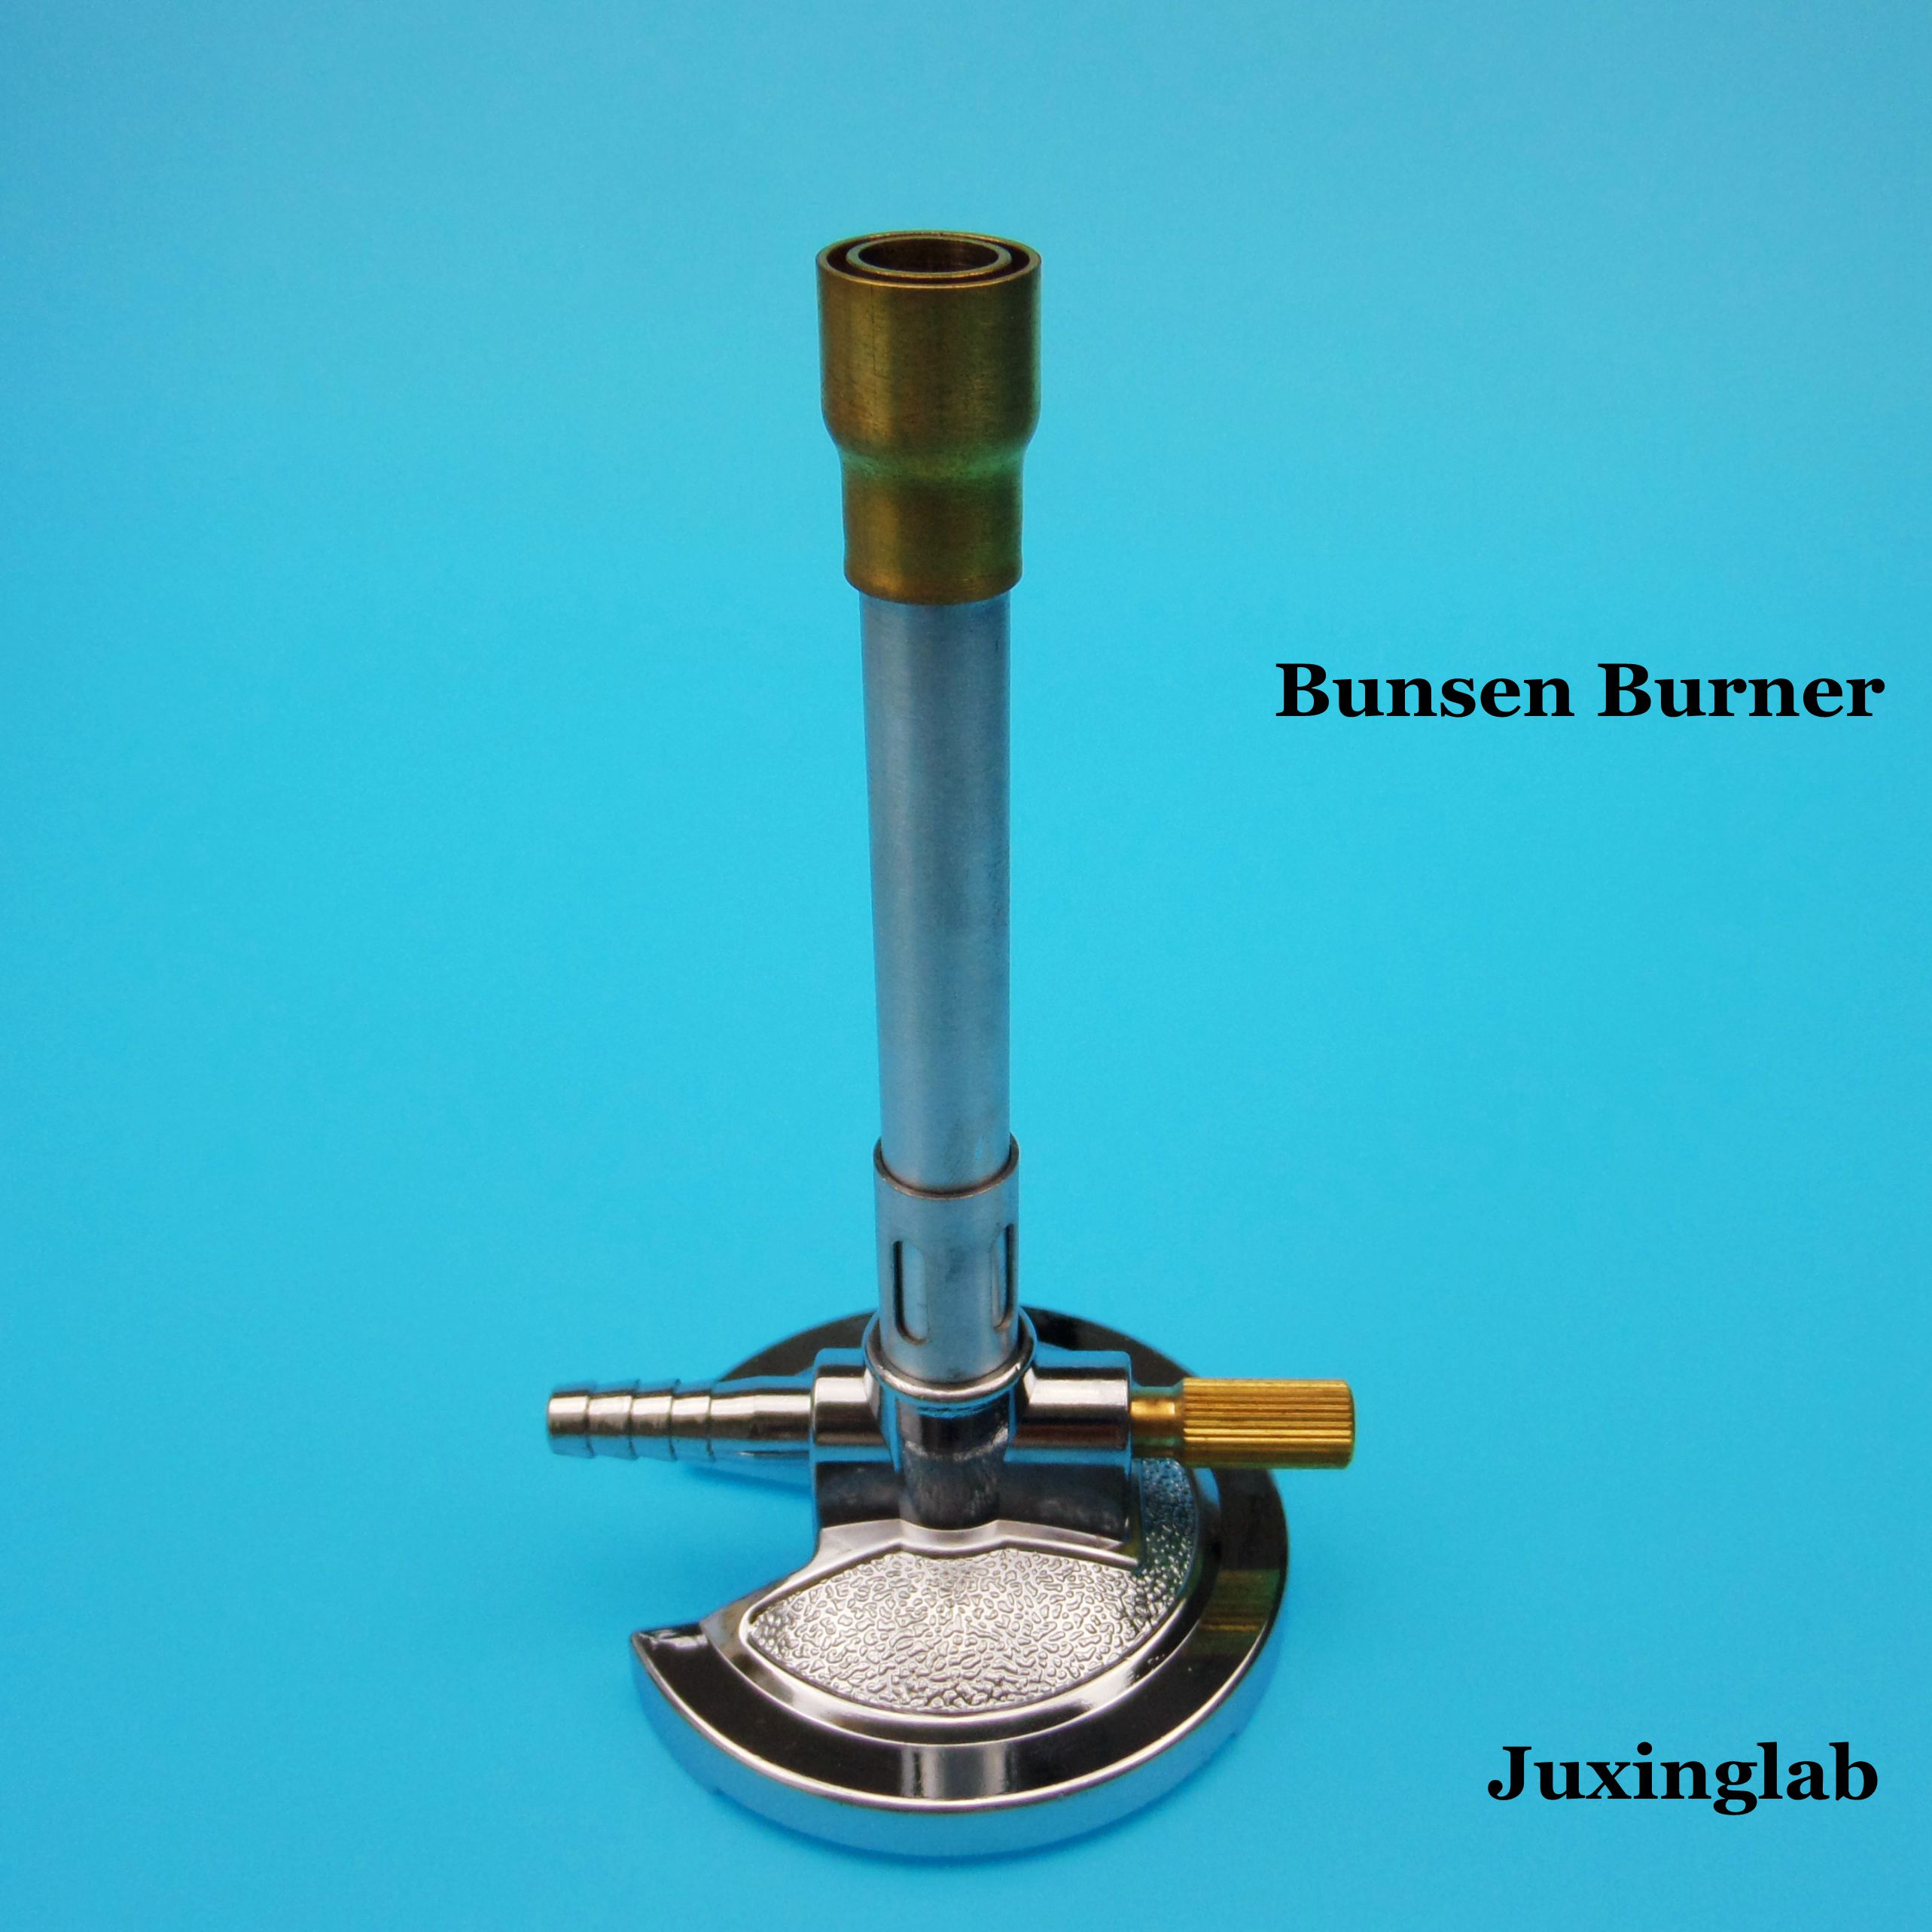 laboratory gas Bunsen Burner  gas burner Made Of Alloy  Brass burner -Single laboratory burners bunsen burner portablelaboratory gas Bunsen Burner  gas burner Made Of Alloy  Brass burner -Single laboratory burners bunsen burner portable